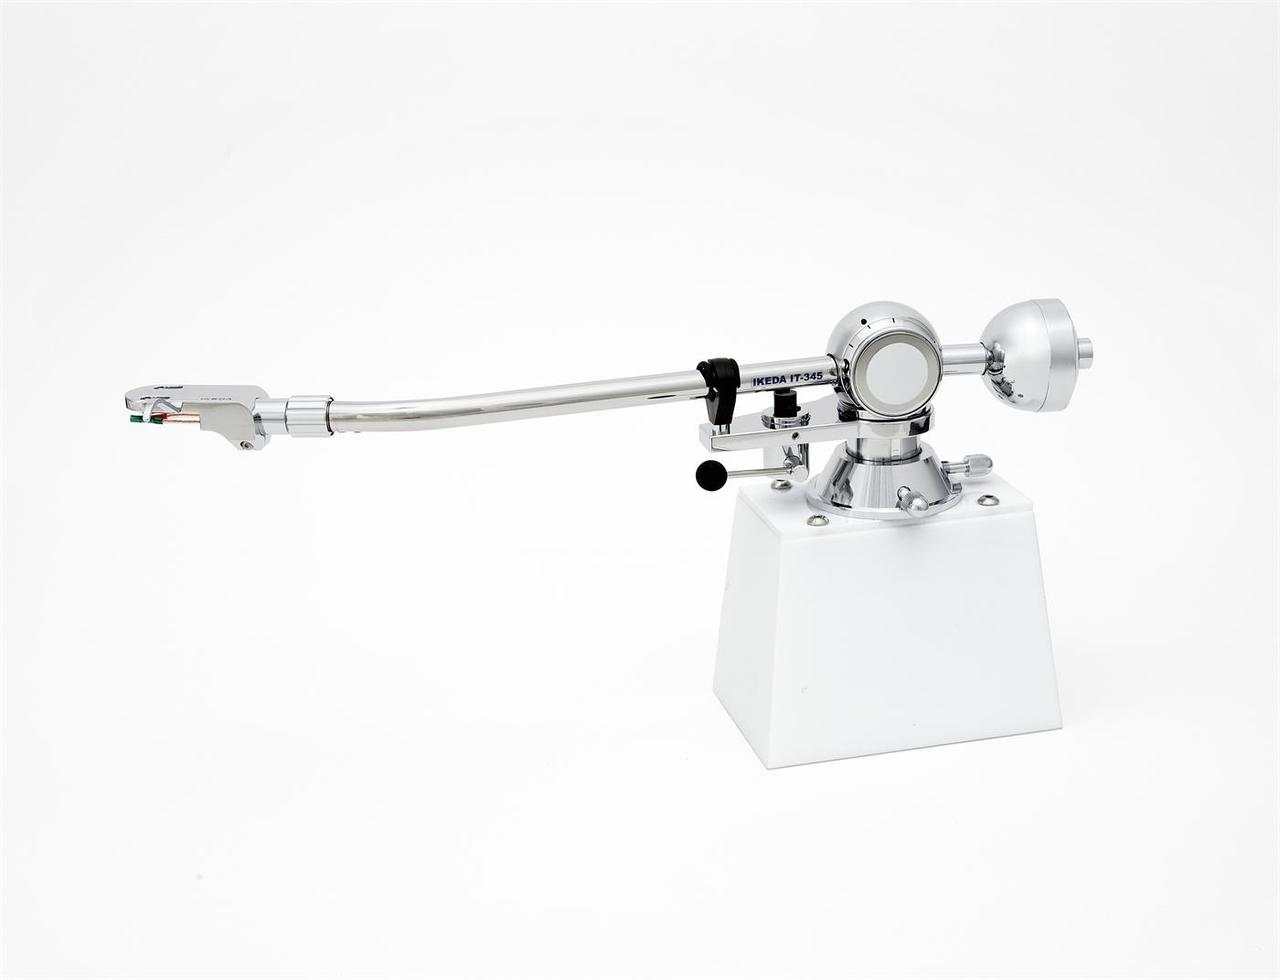 Ikea IT-345CR1 9 Inch Tone Arm. At True Audiophile.